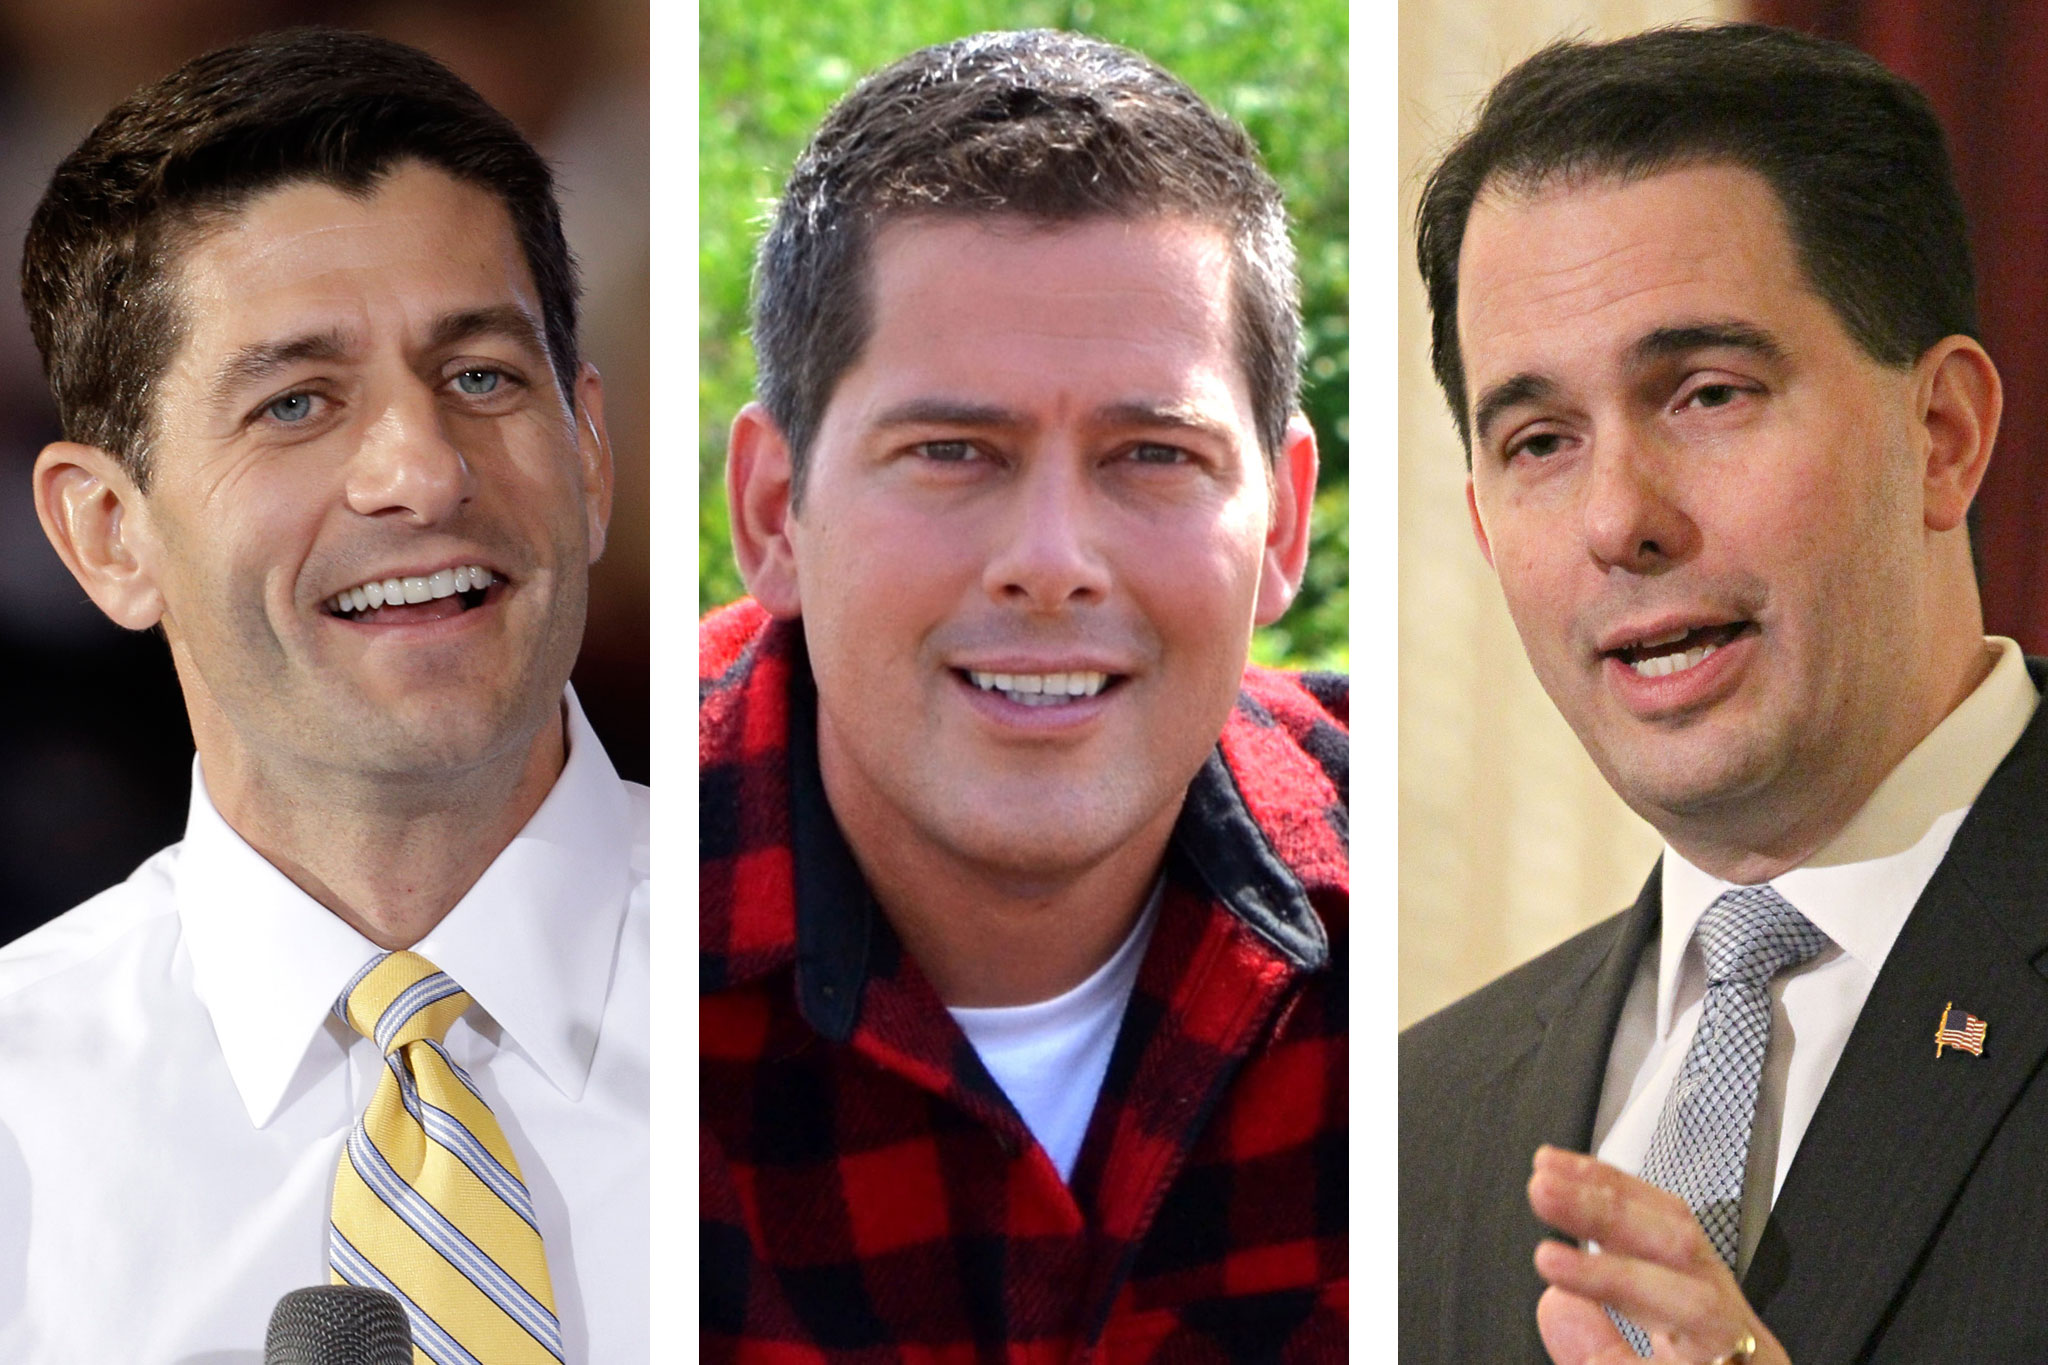 U.S. Reps. Paul Ryan and Sean Duffy, and Wisconsin Gov. Scott Walker are all part of the immigration debate in the Republican Party.